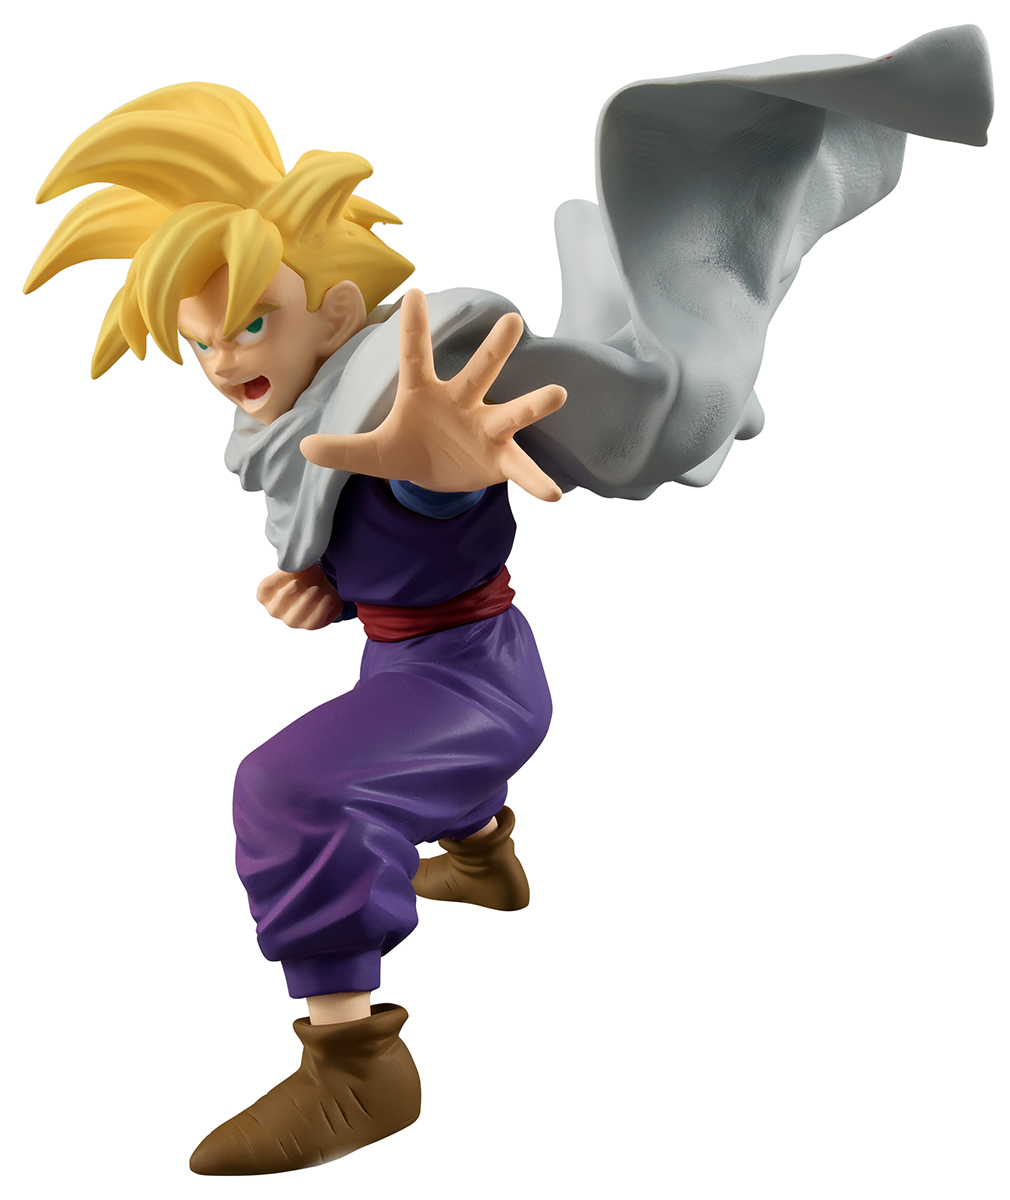 Bandai Фигурка Dragon Ball Styling Son Gohan 9 см bandai фигурка o p styling girls boa nefeltari vivi 14 см